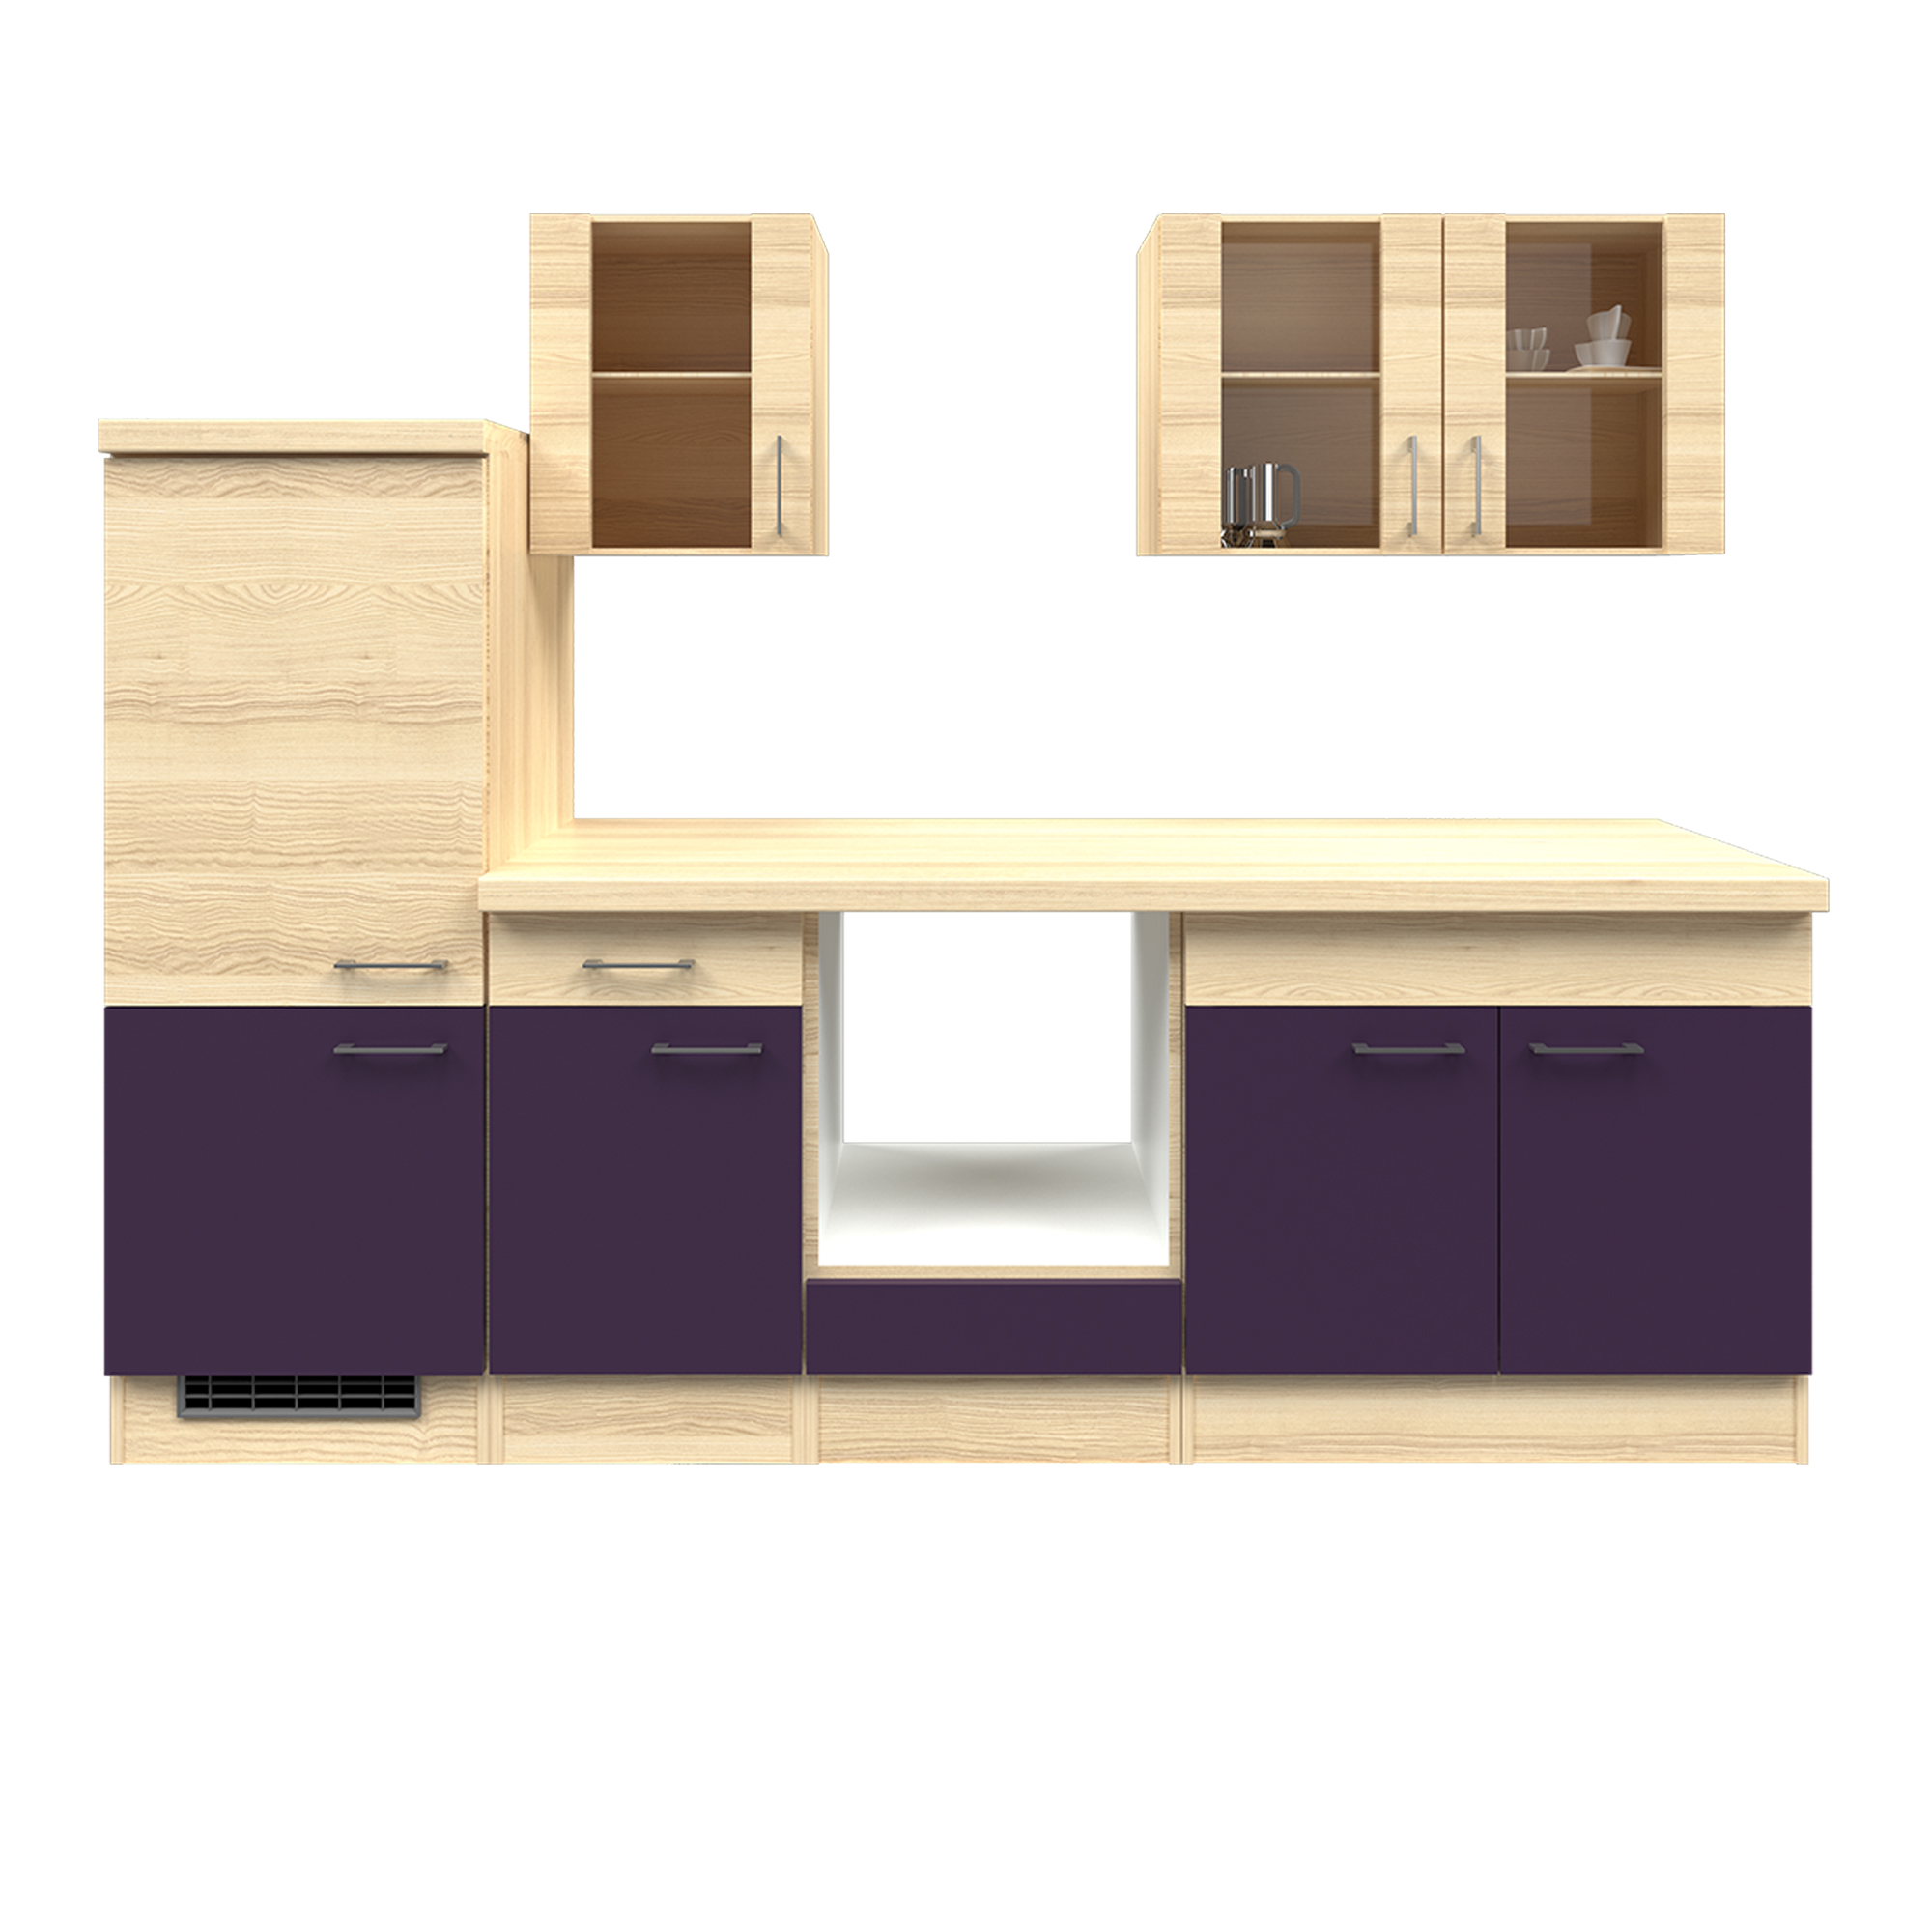 k chenzeile focus k chen leerblock 7 teilig breite 270 cm aubergine k che k chenzeilen. Black Bedroom Furniture Sets. Home Design Ideas